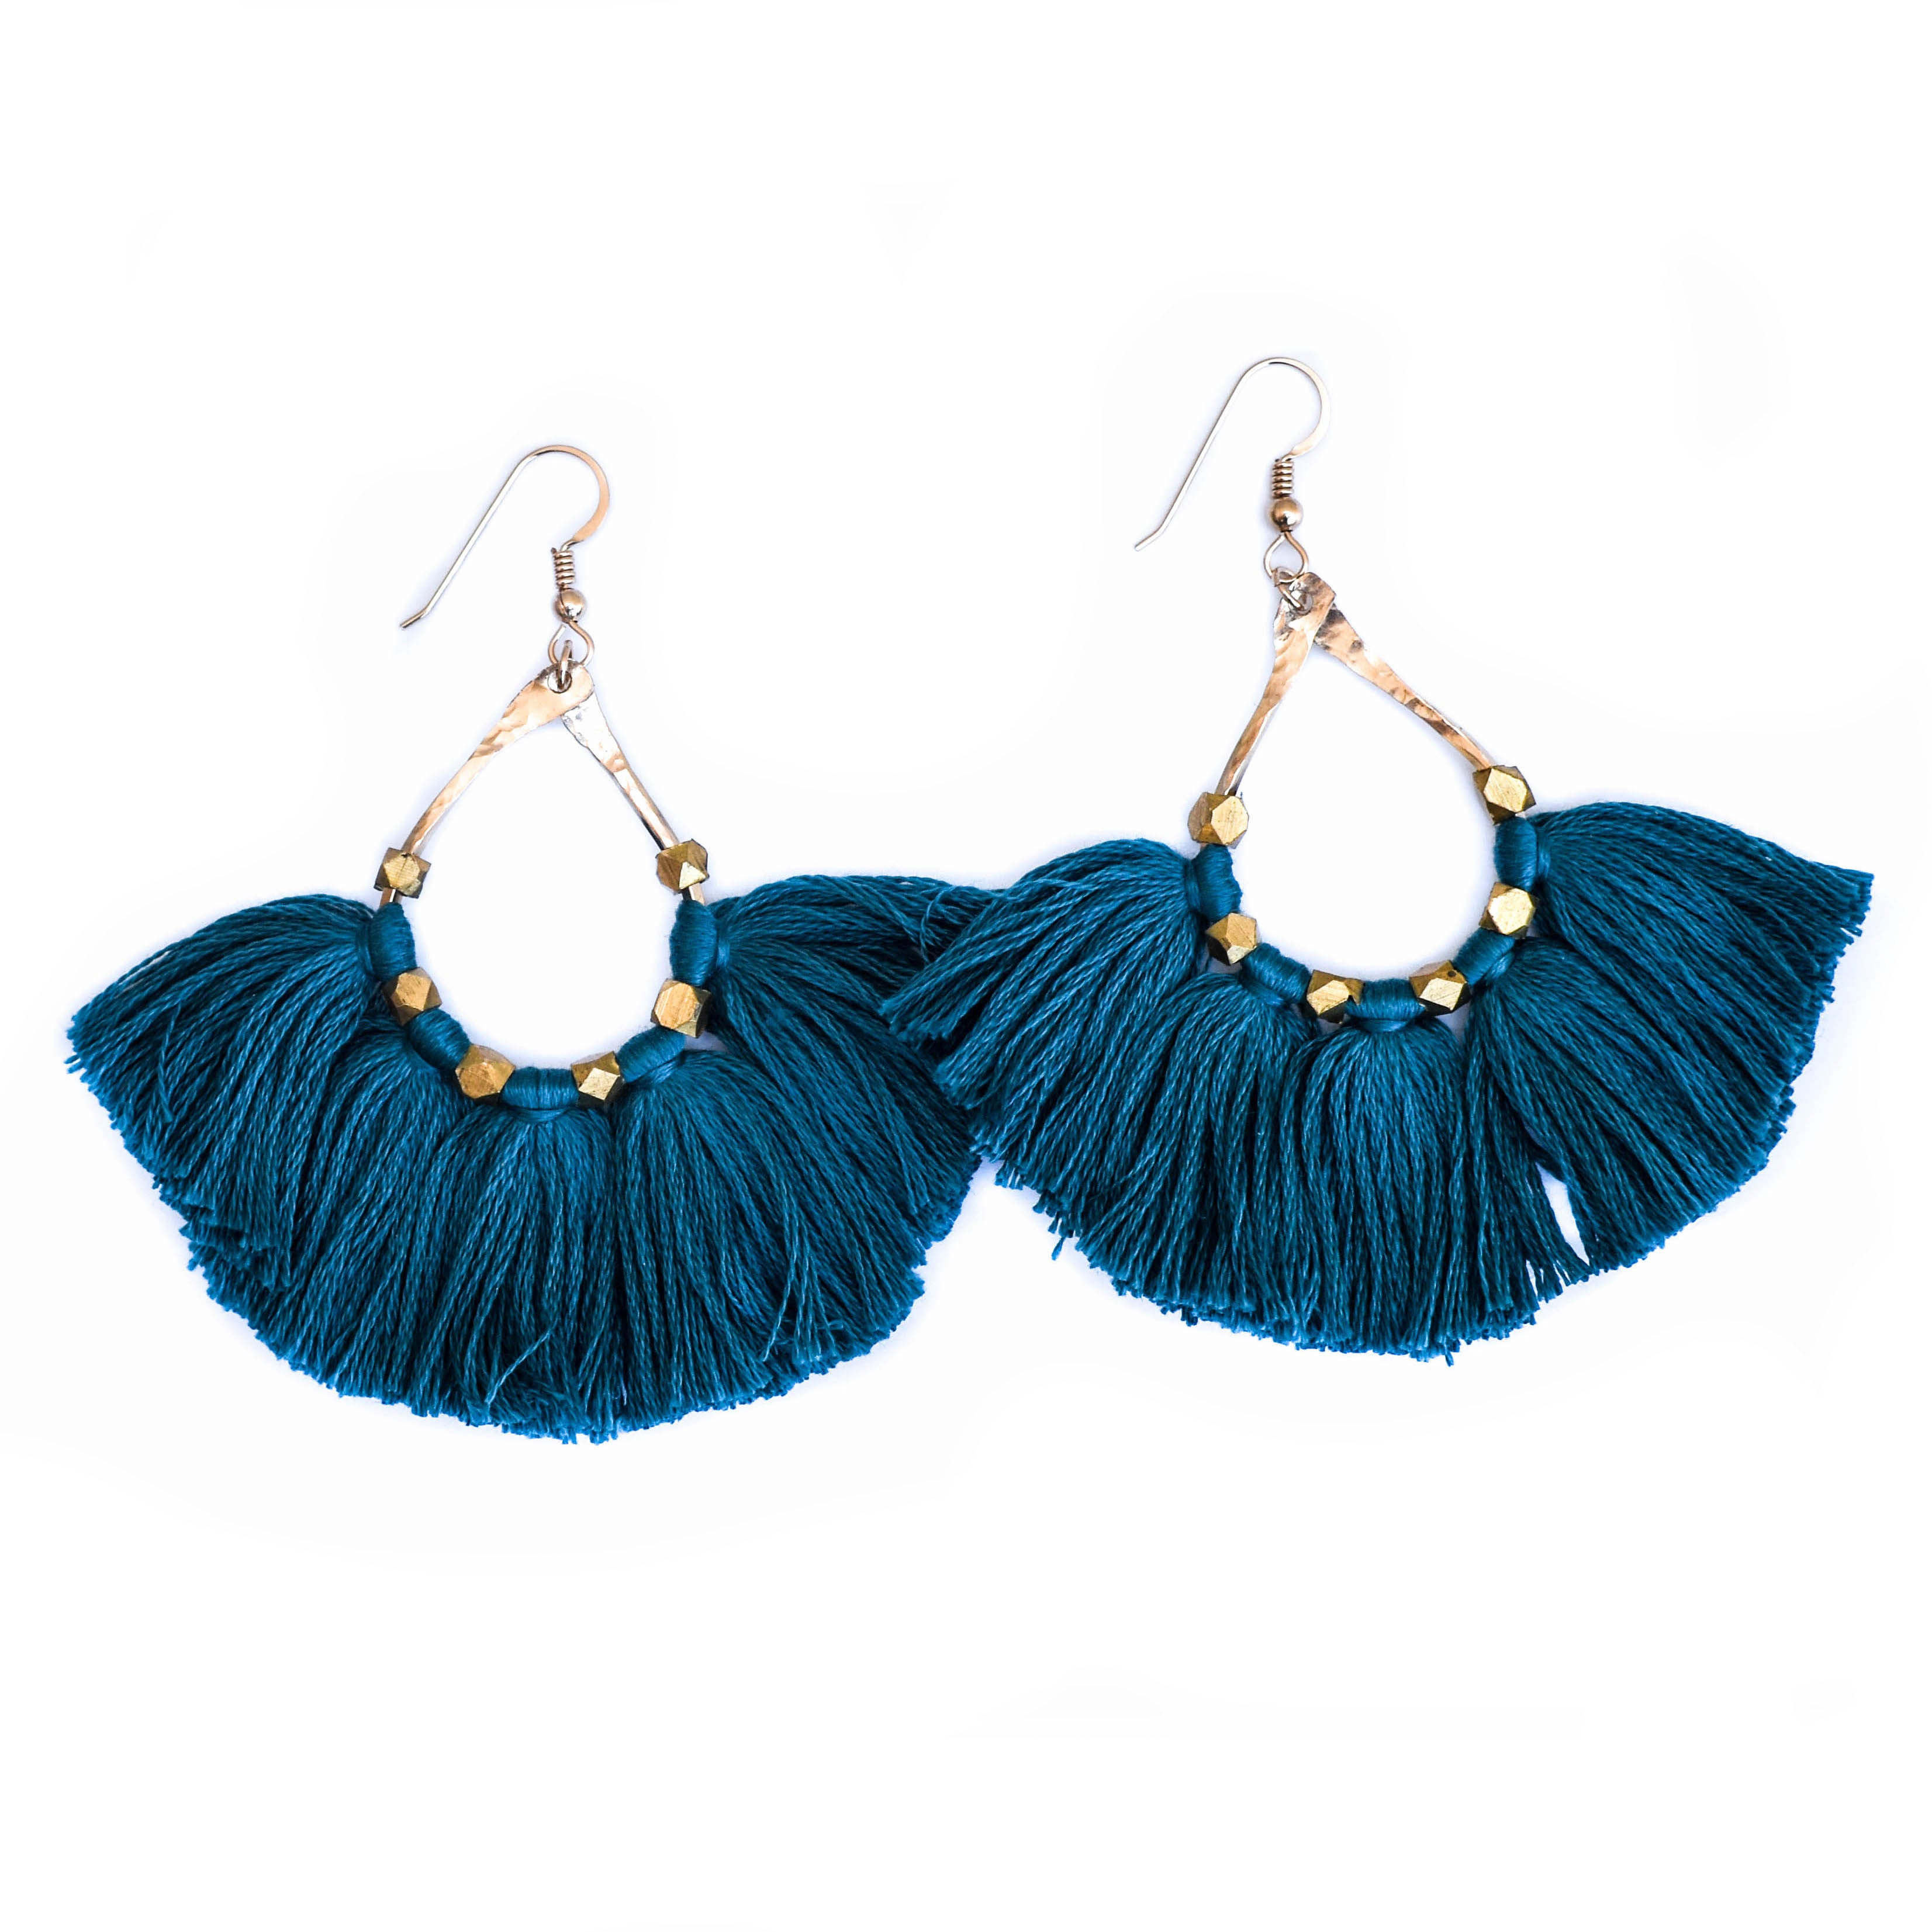 Earrings - Tassel (Dark Teal)